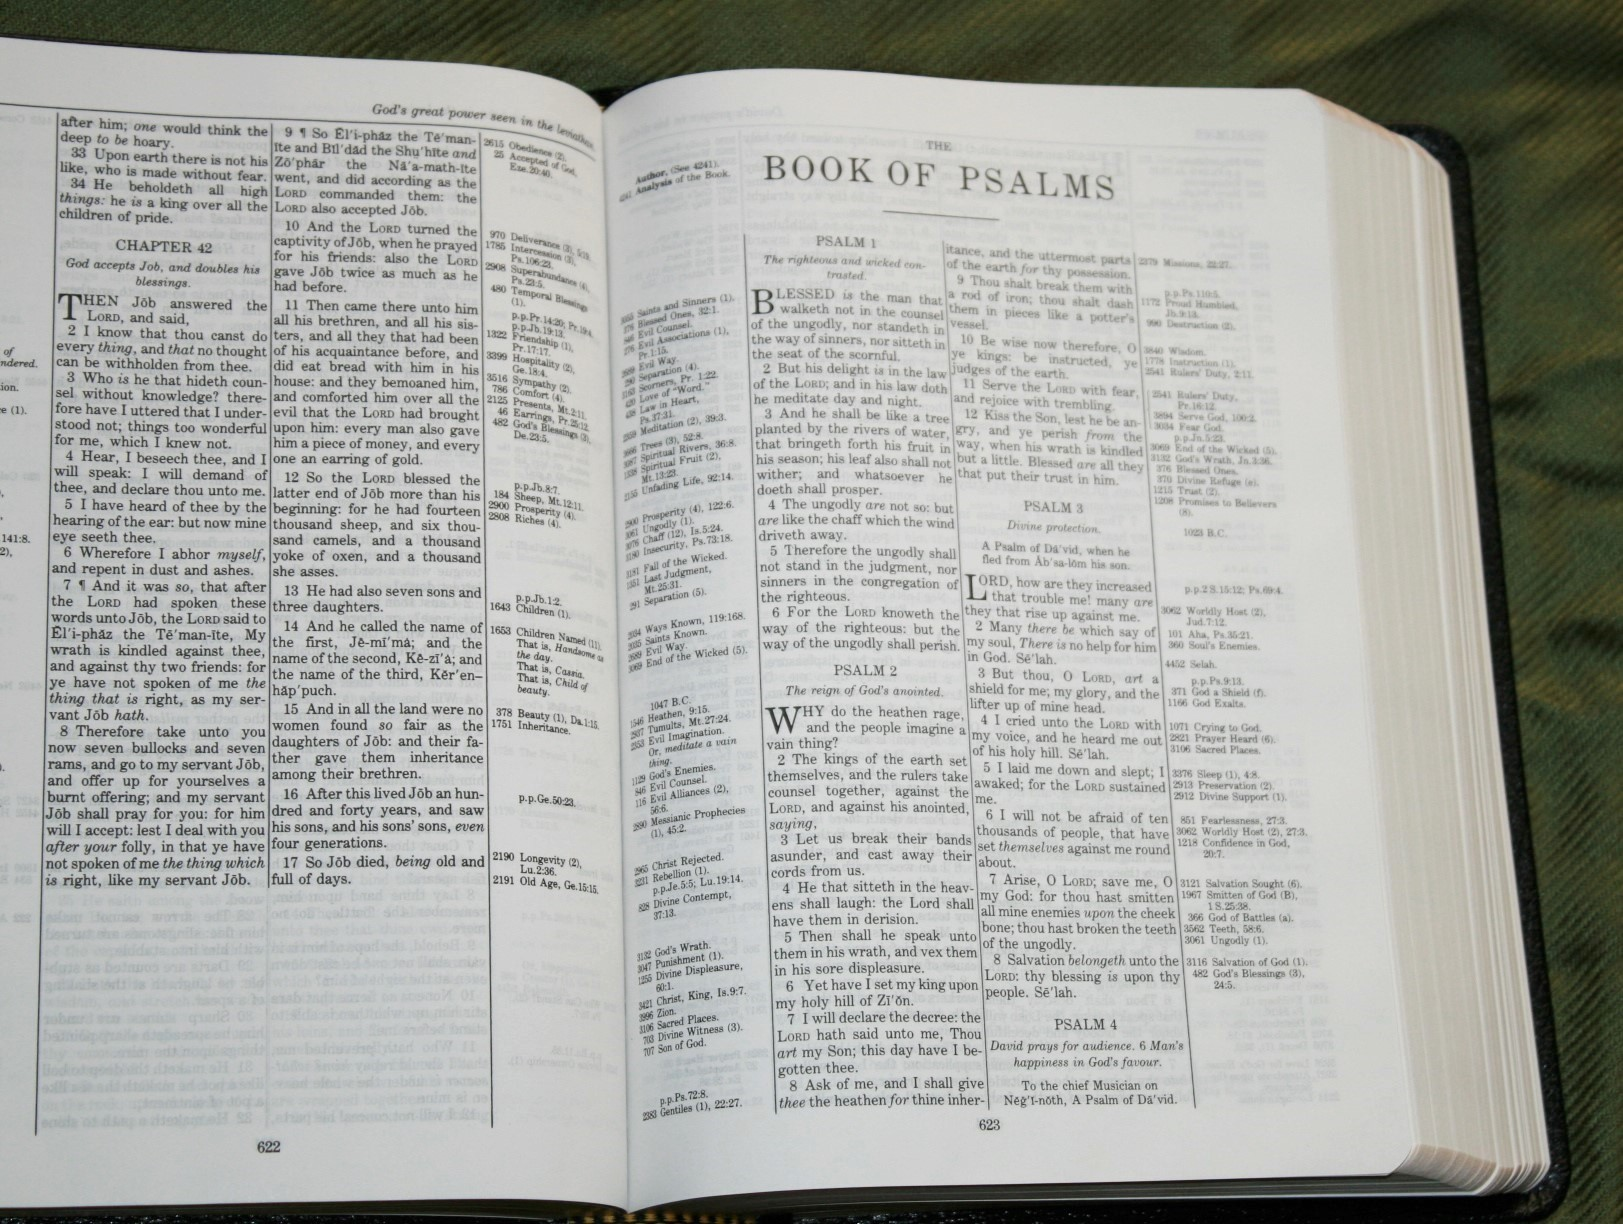 Handy Size Thompson Chain Reference Bible KJV (120)